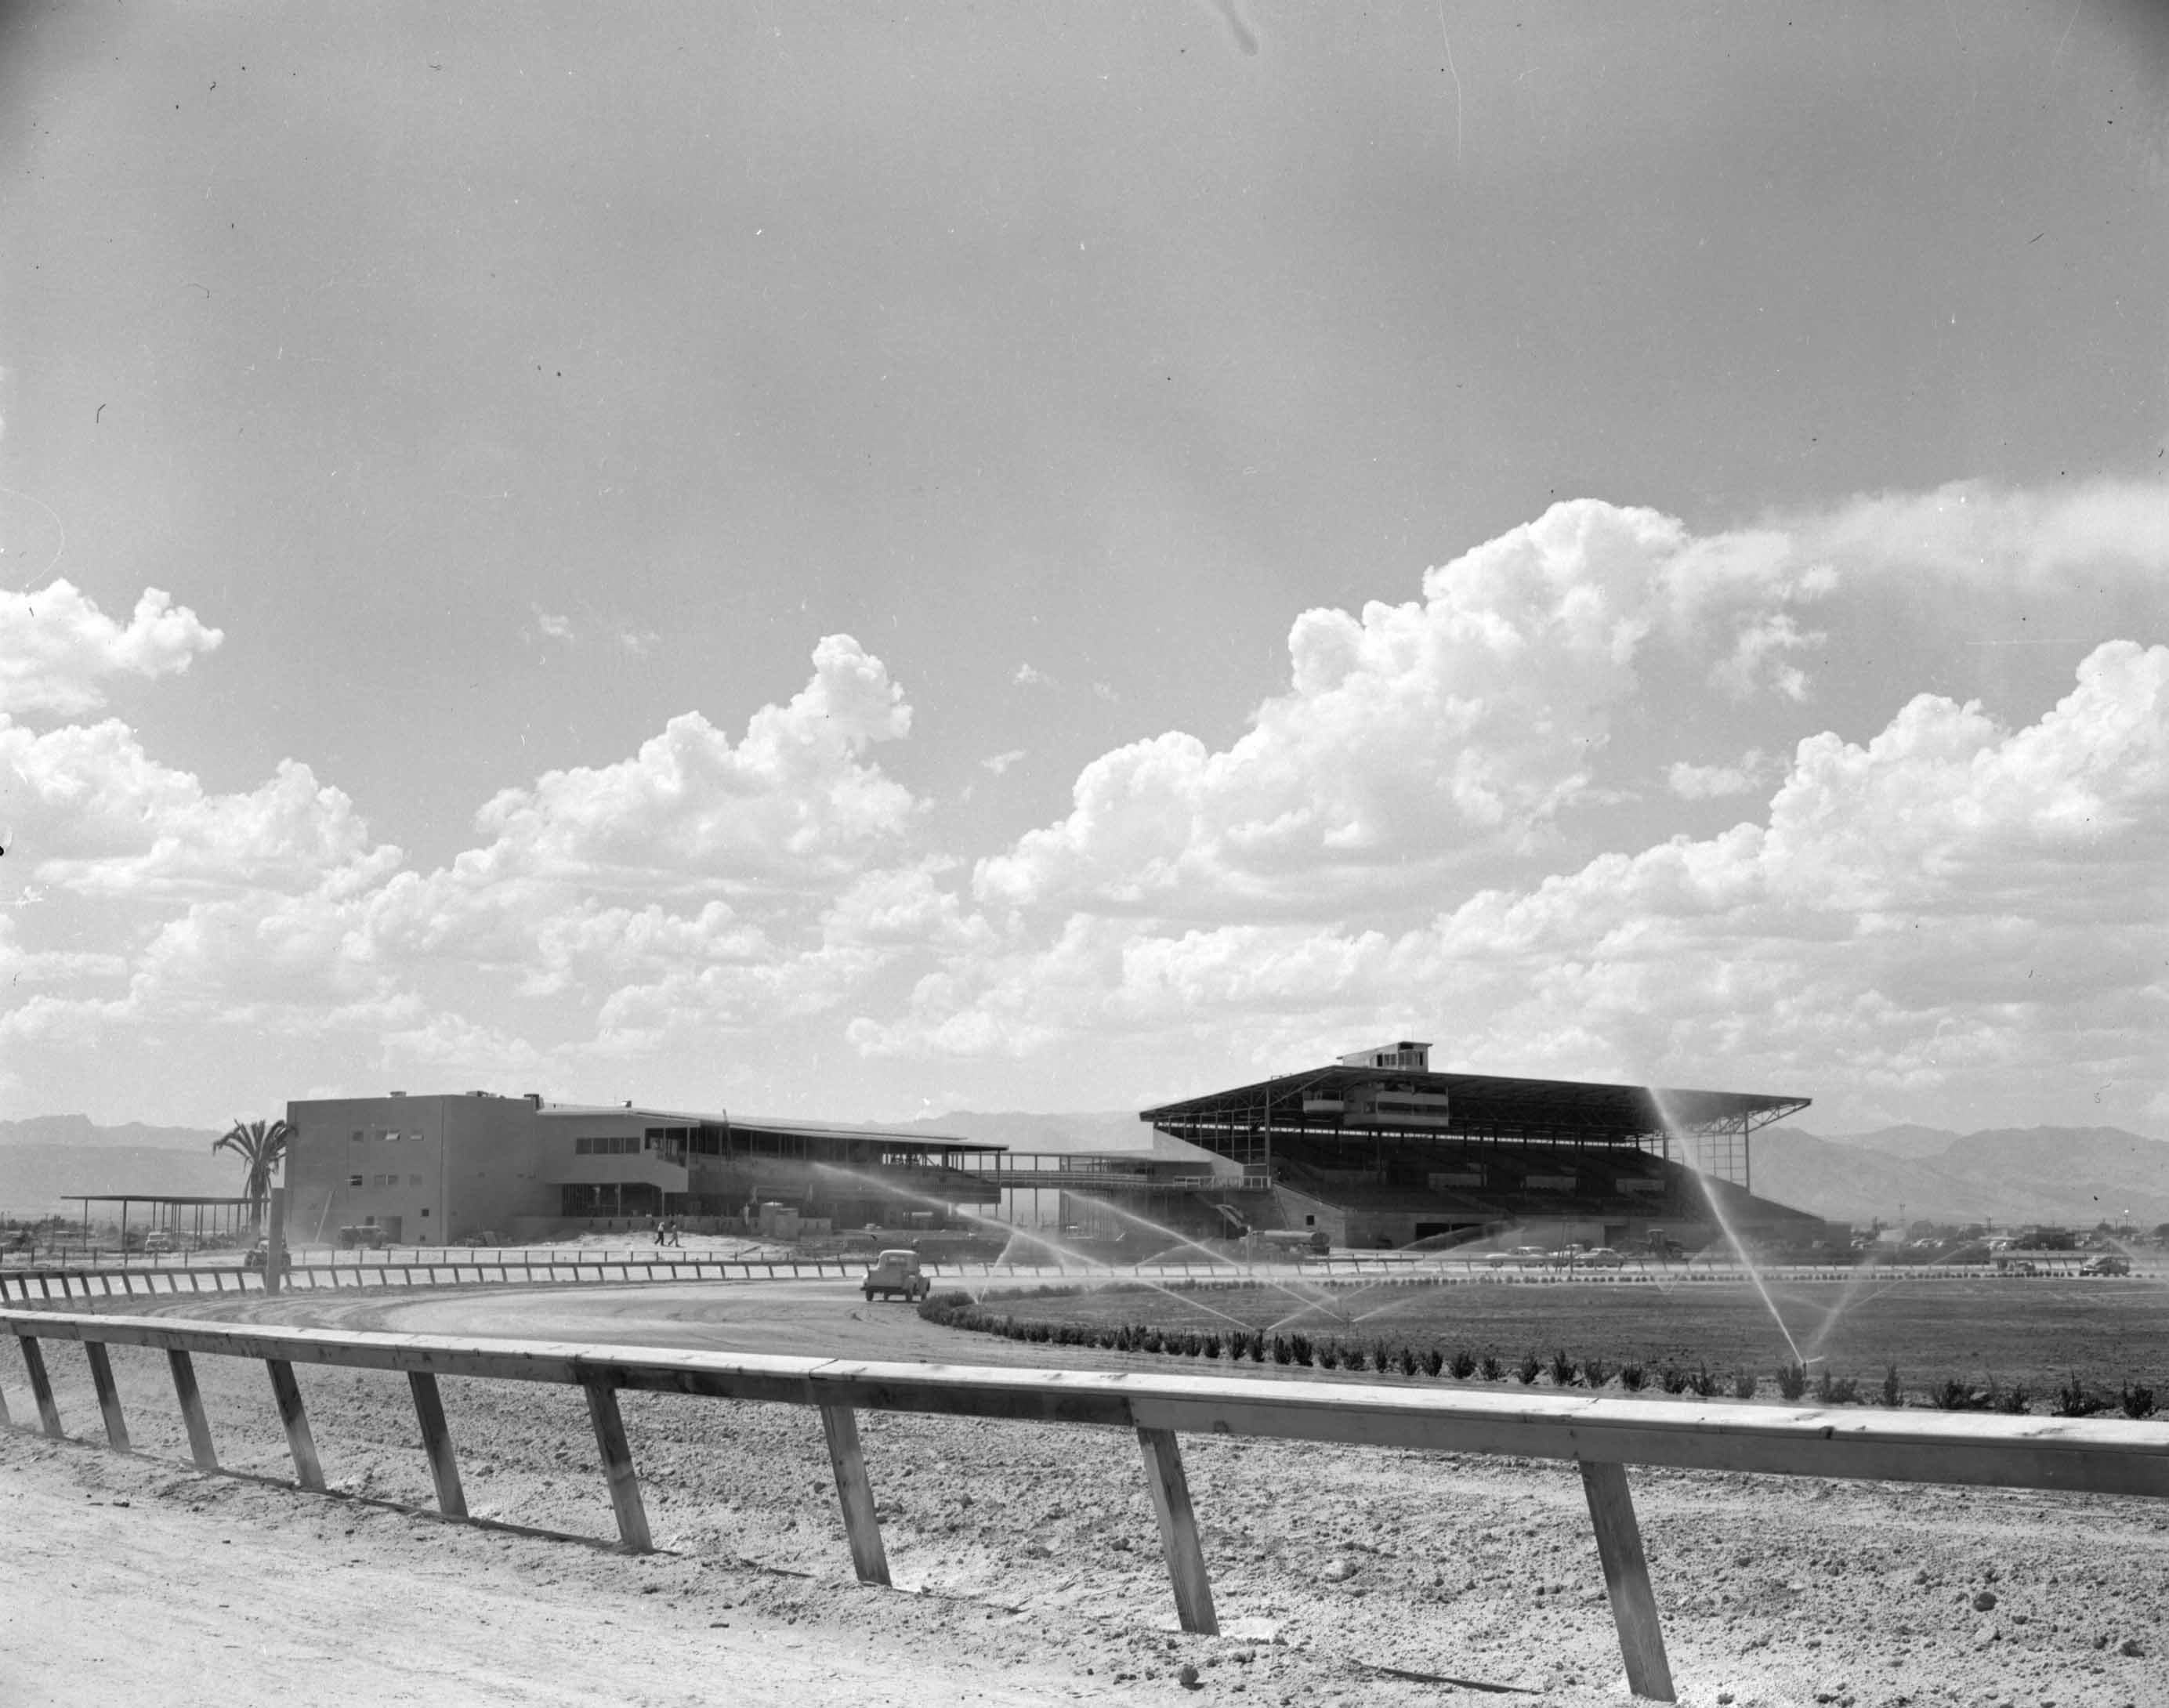 The Las Vegas track during construction in 1951. The clubhouse and grandstands appear largely complete, but the inside rail has not been installed. The turf course, which was never used, is being watered. Photo: Las Vegas News Bureau